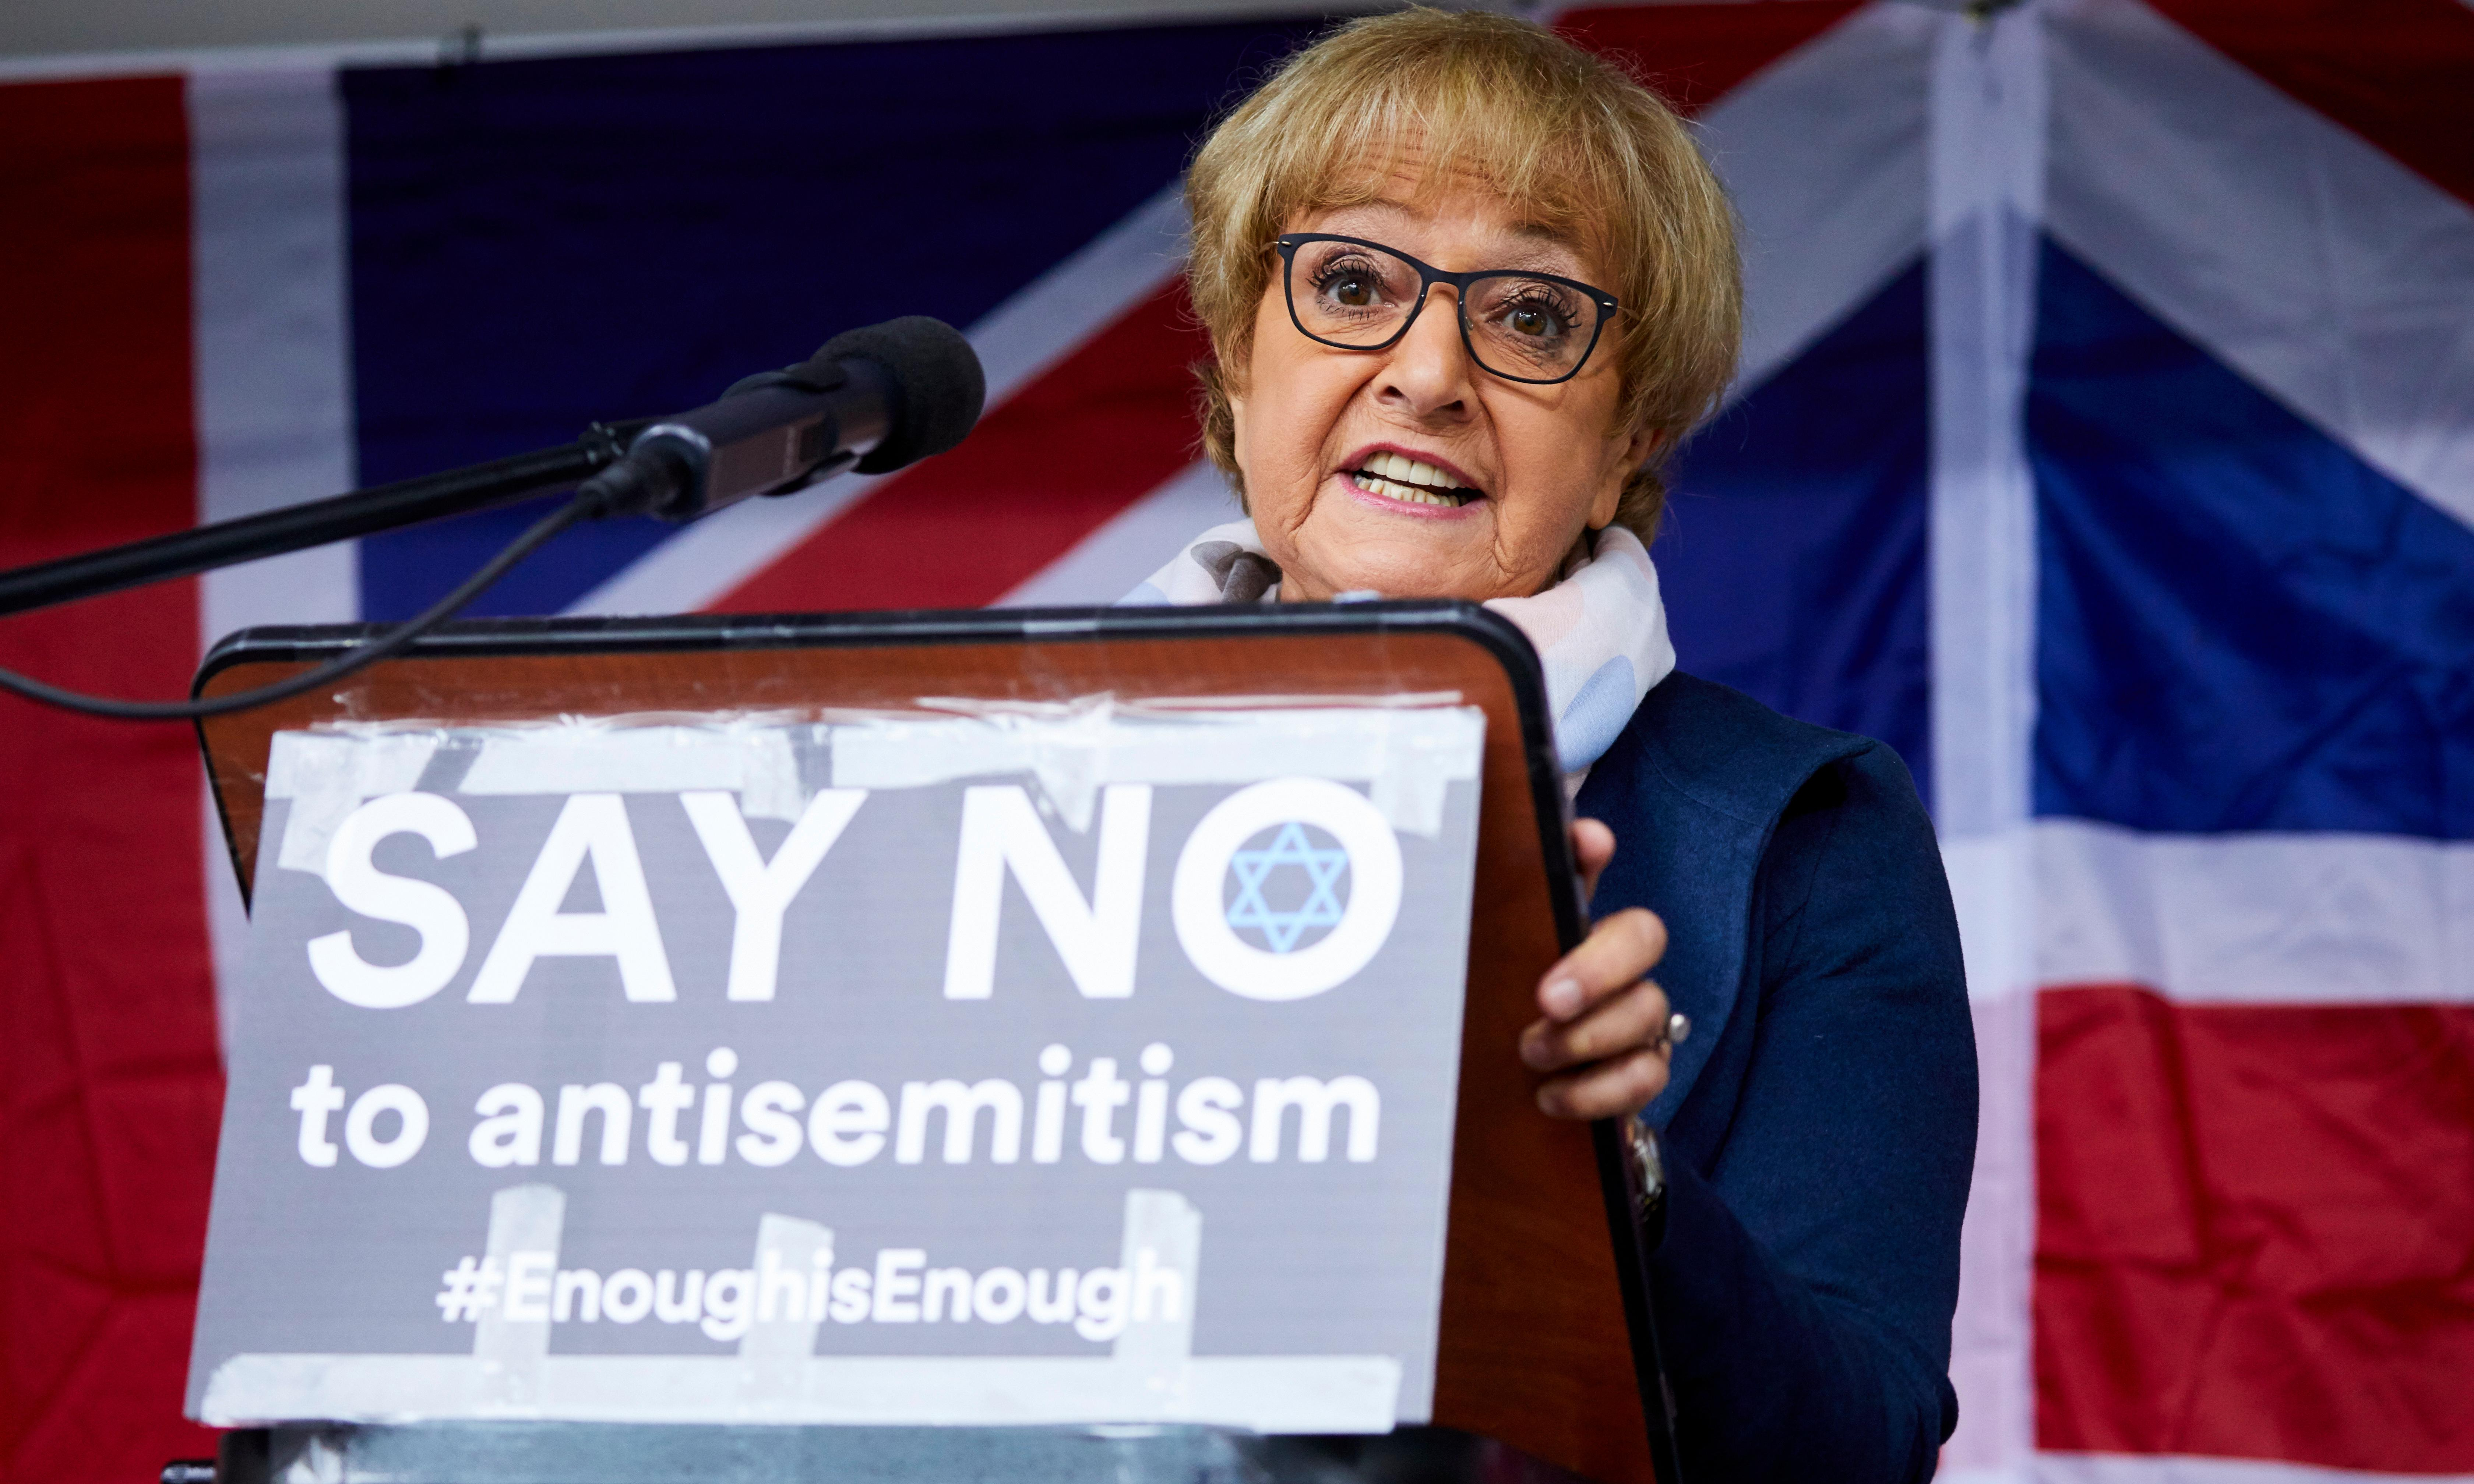 I challenged Corbyn on antisemitism a year ago. Things have only got worse